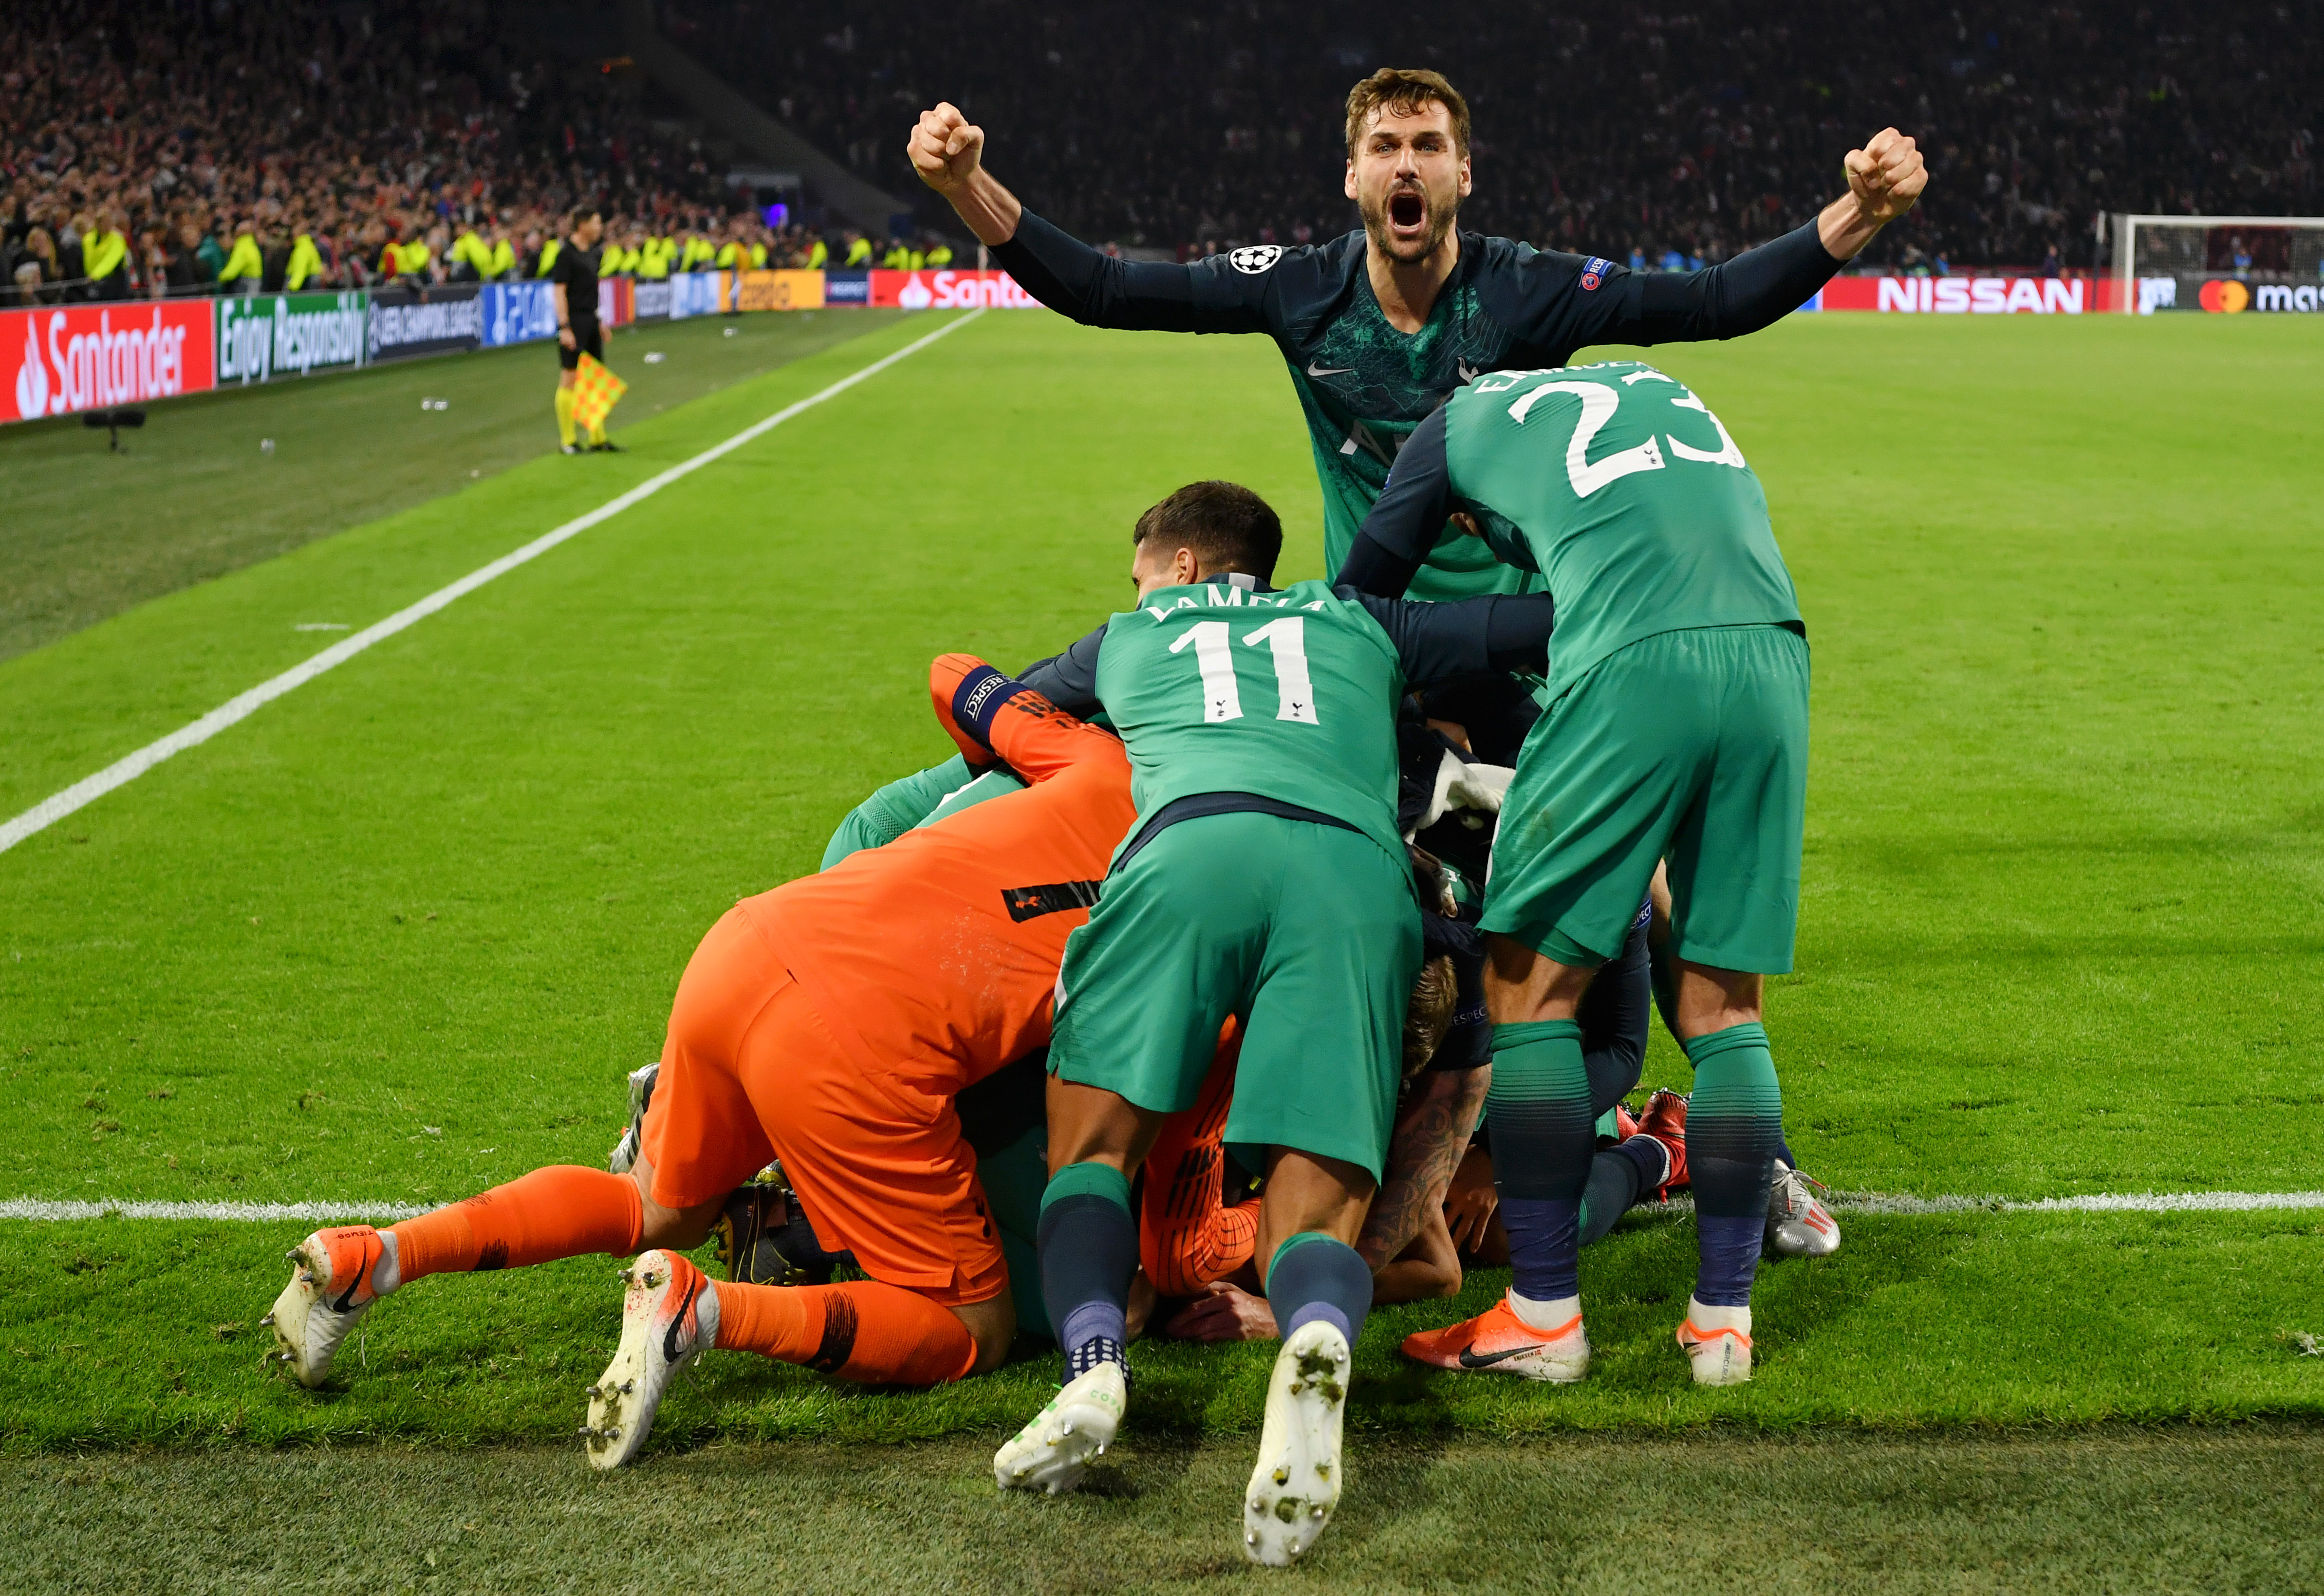 Fernando Llorente is why Tottenham are in the Champions League final